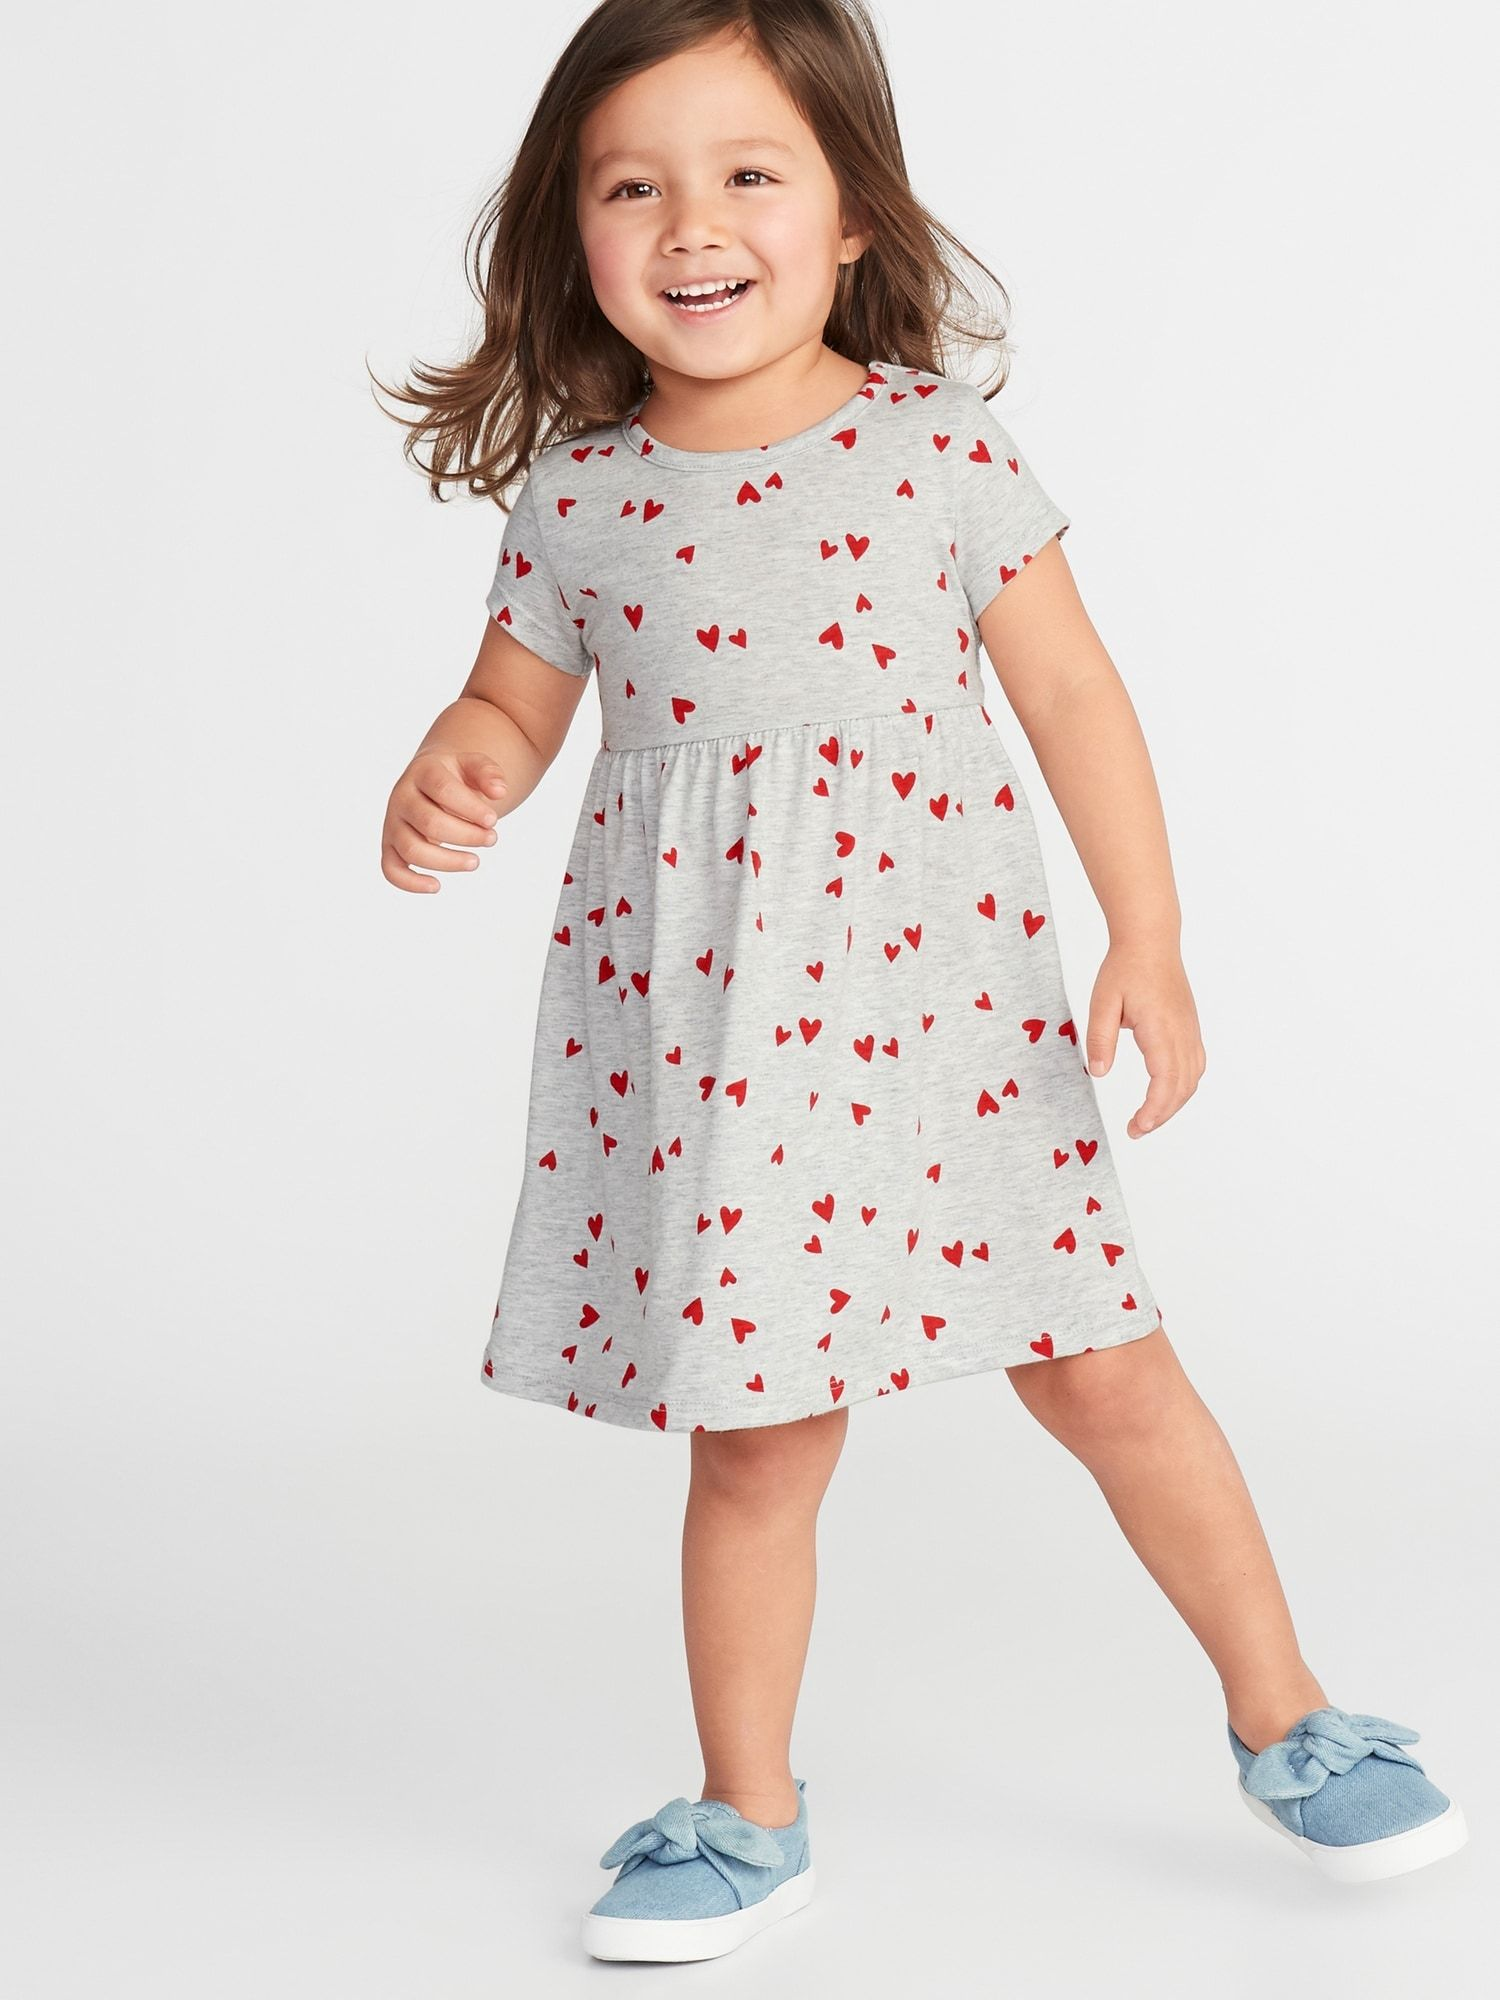 152d050083576 Jersey Fit & Flare Dress for Toddler Girls | The Girls | Toddler ...